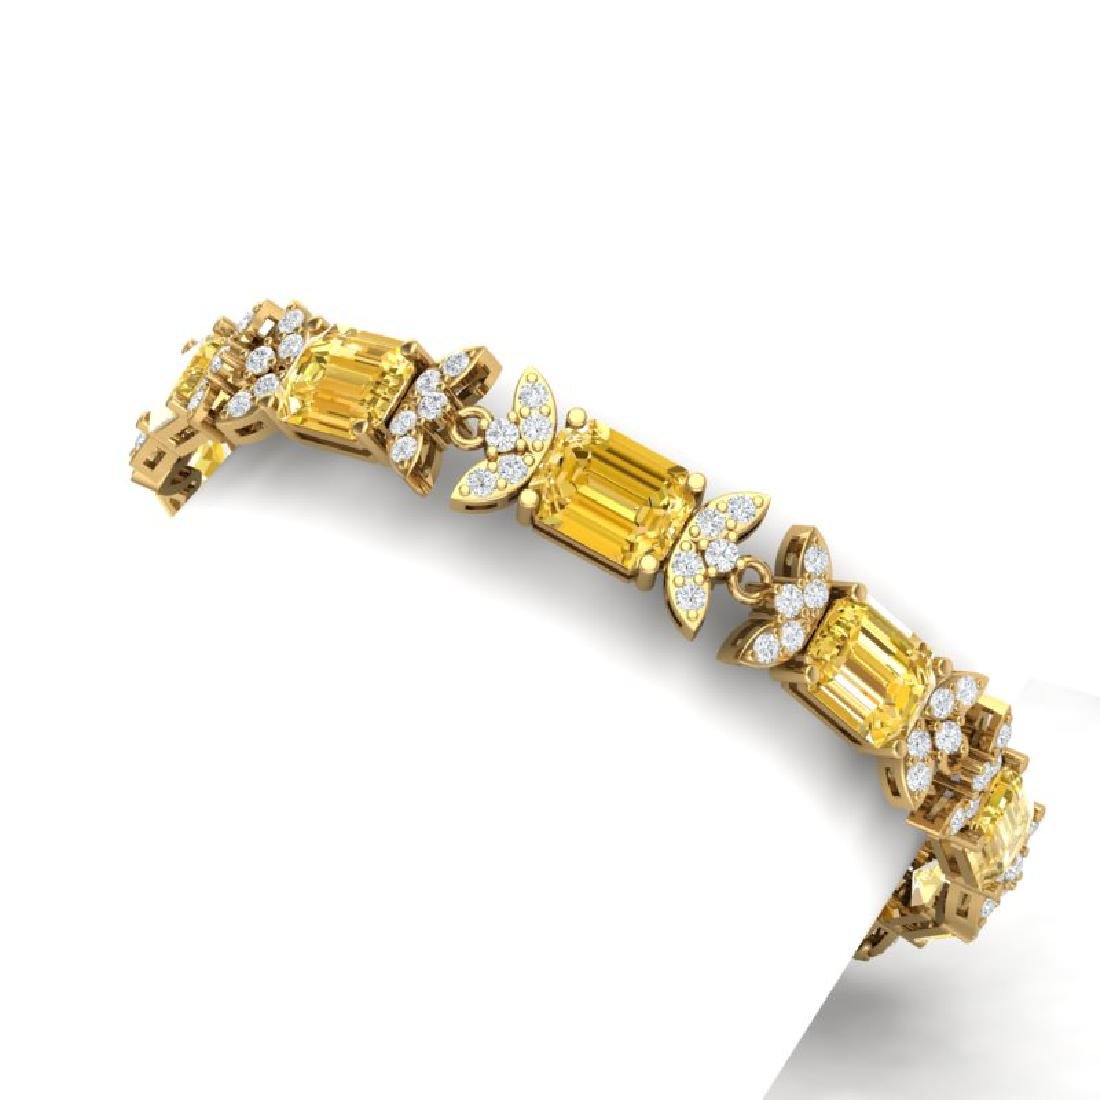 35.21 CTW Royalty Canary Citrine & VS Diamond Bracelet - 2